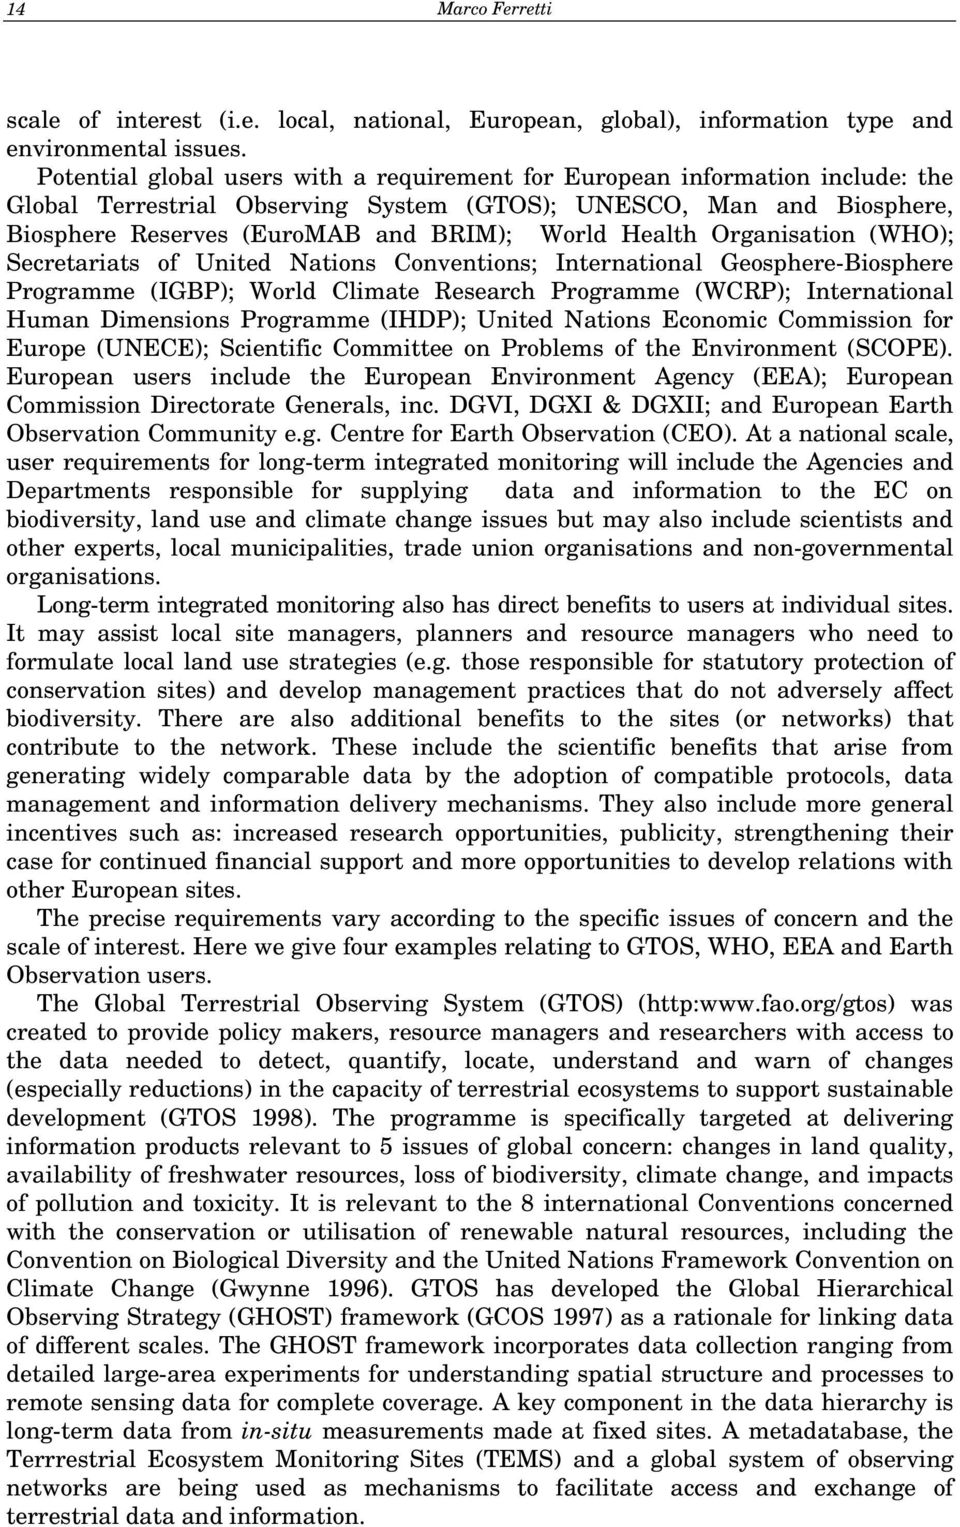 Health Organisation (WHO); Secretariats of United Nations Conventions; International Geosphere-Biosphere Programme (IGBP); World Climate Research Programme (WCRP); International Human Dimensions